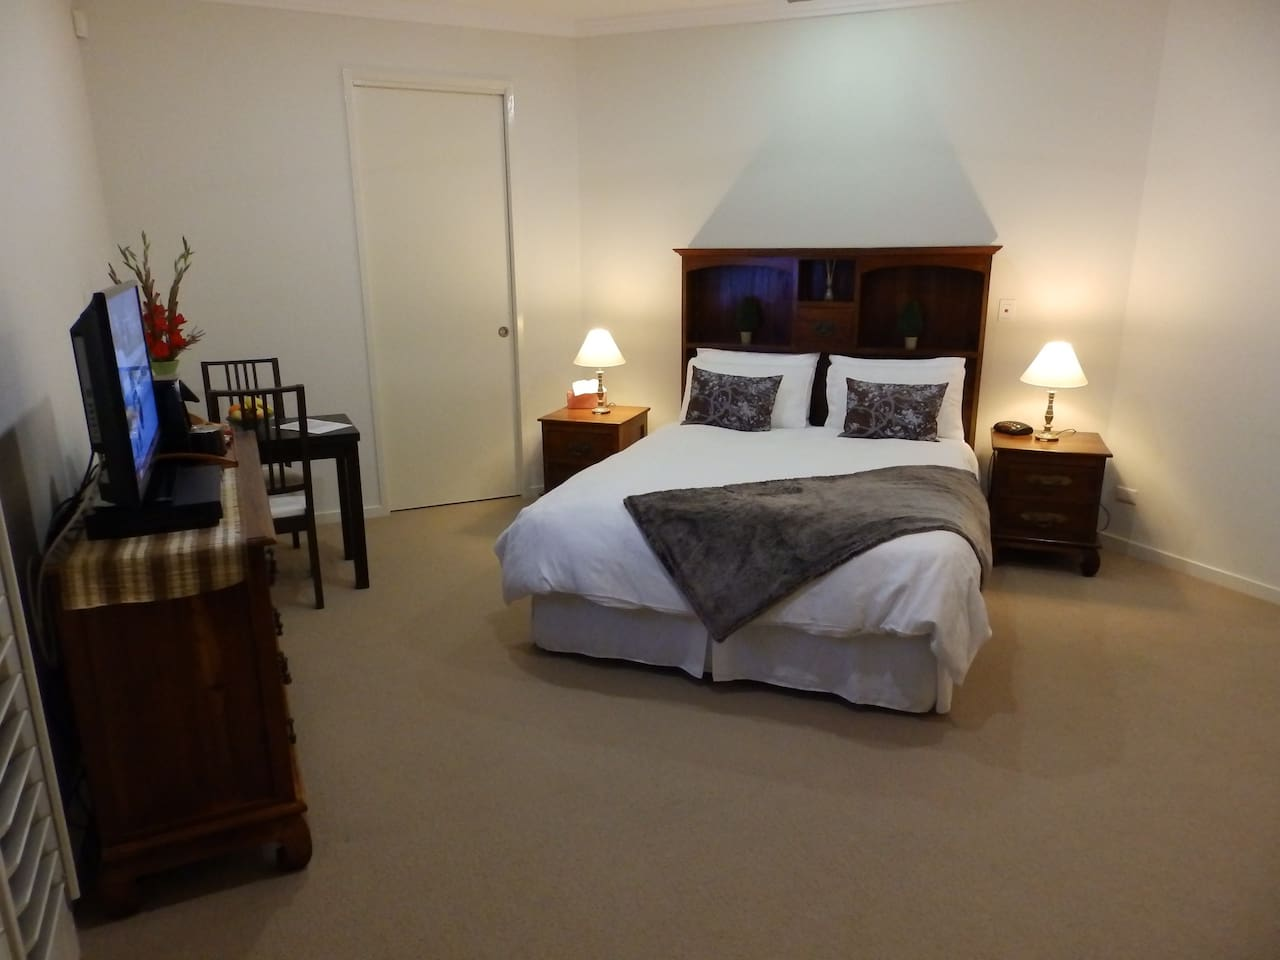 Queen Bed with Luxury Linen, large room with ensuite, walk in robe, sitting area, table & chairs